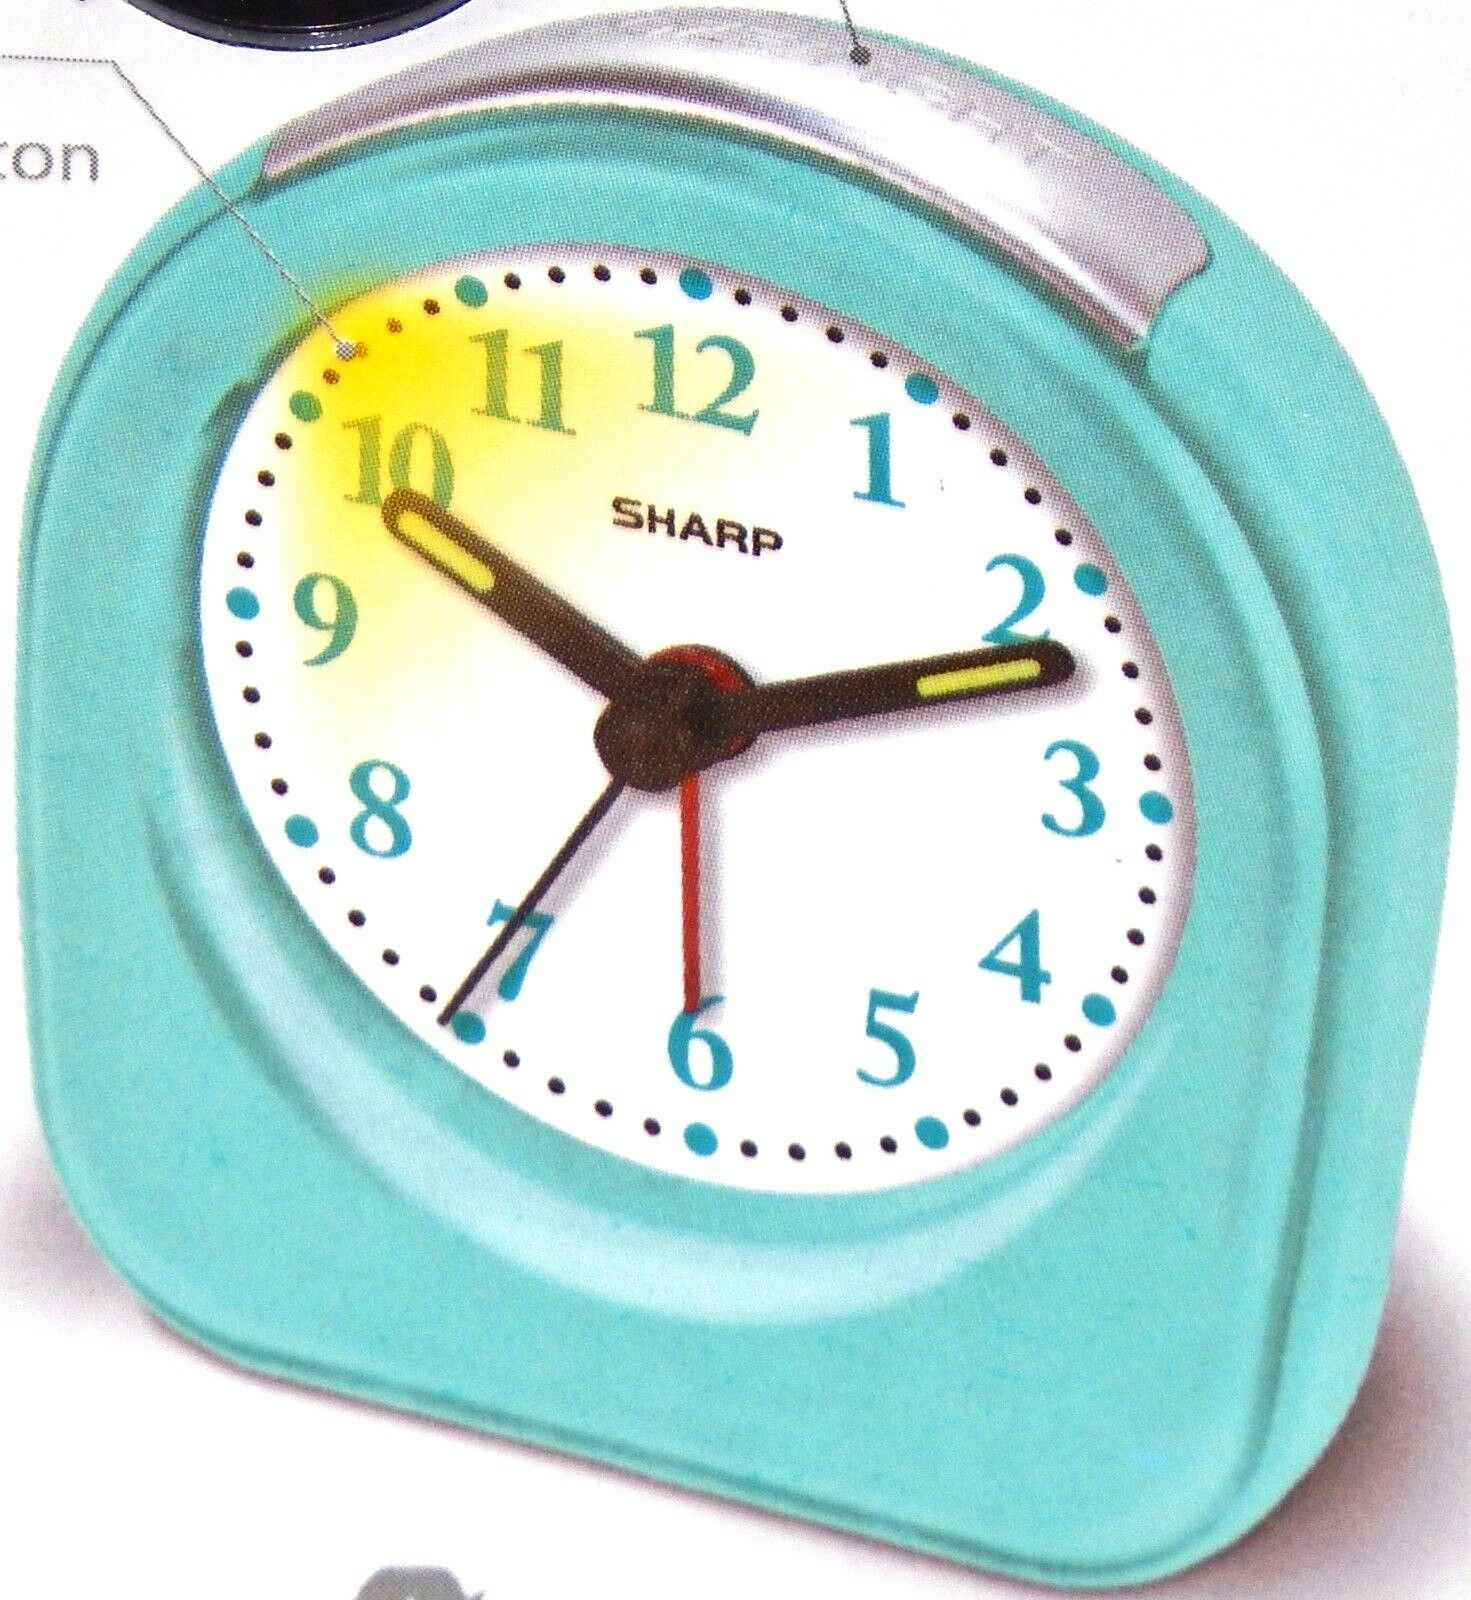 Sharp battery powered ascending alarm clock back light hands glow picture 1 of 12 amipublicfo Images